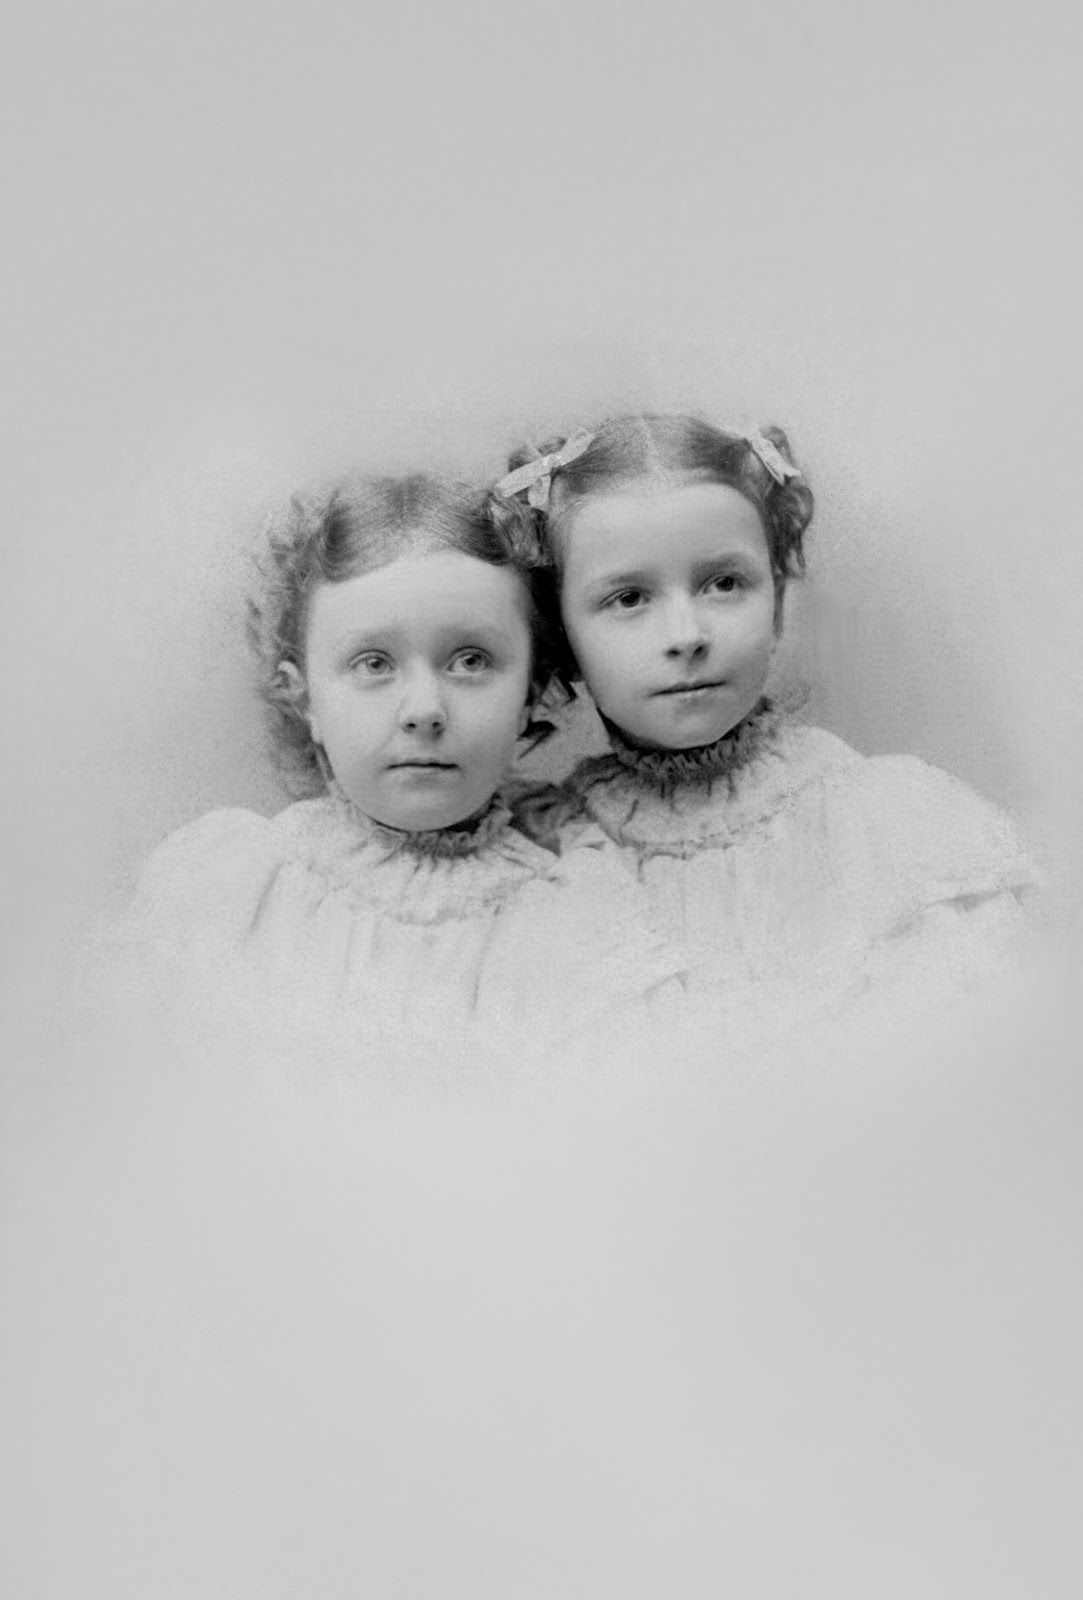 Lizzie borden murders in fall river massachusetts that occurred in the